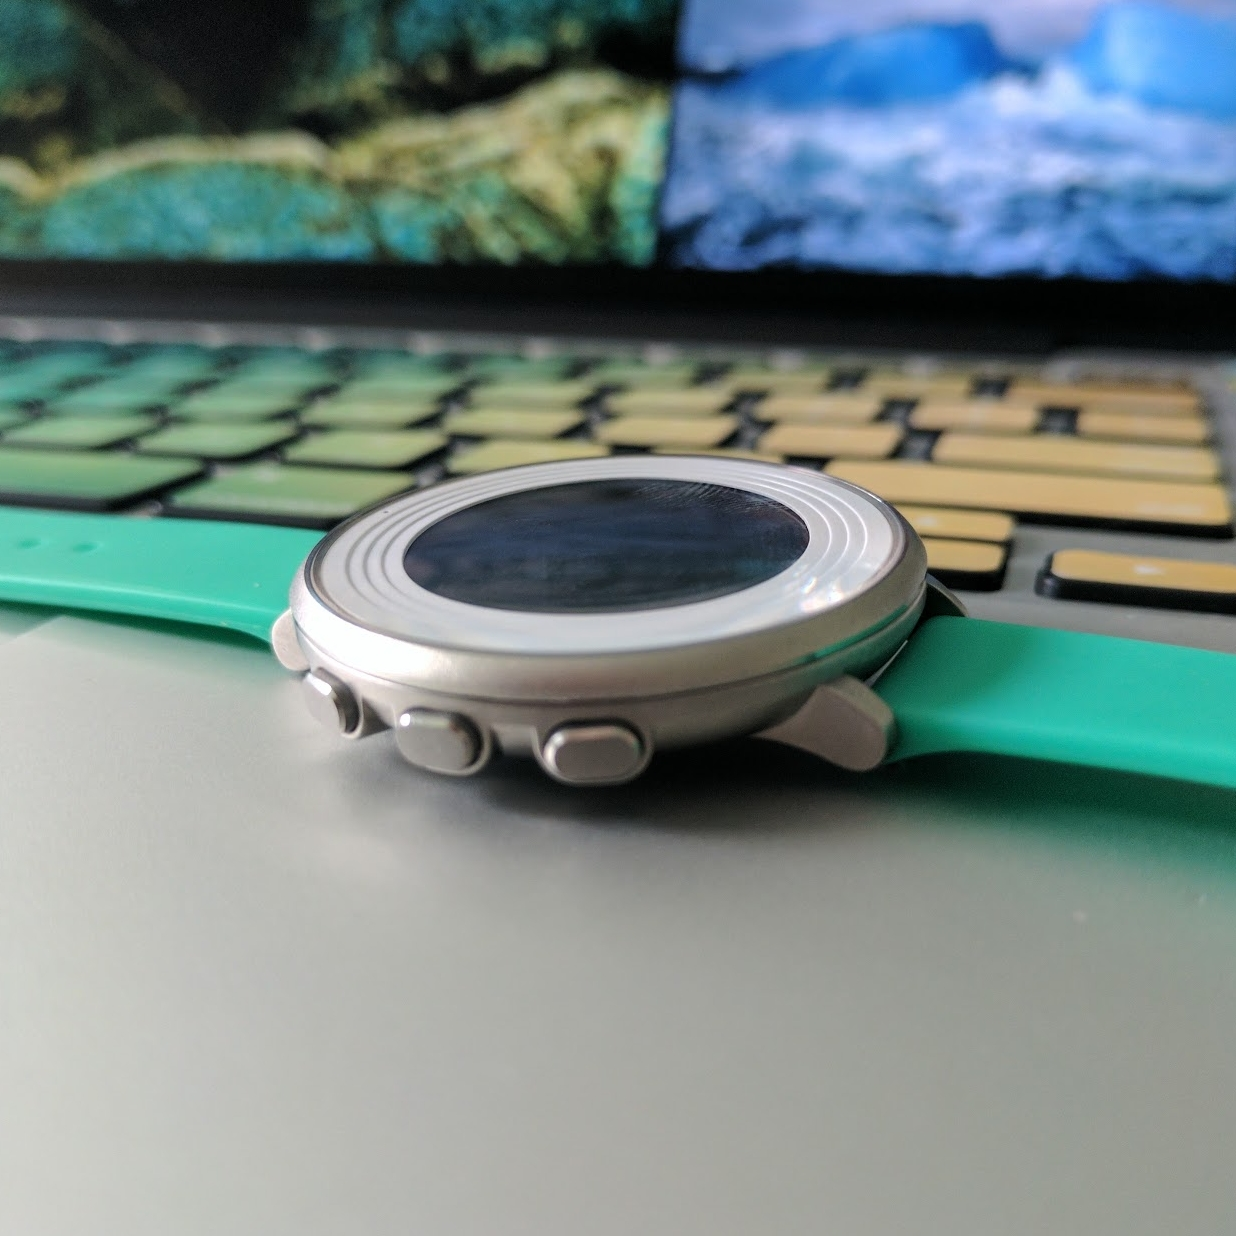 So slim. This thing actually just looks like a regular watch.